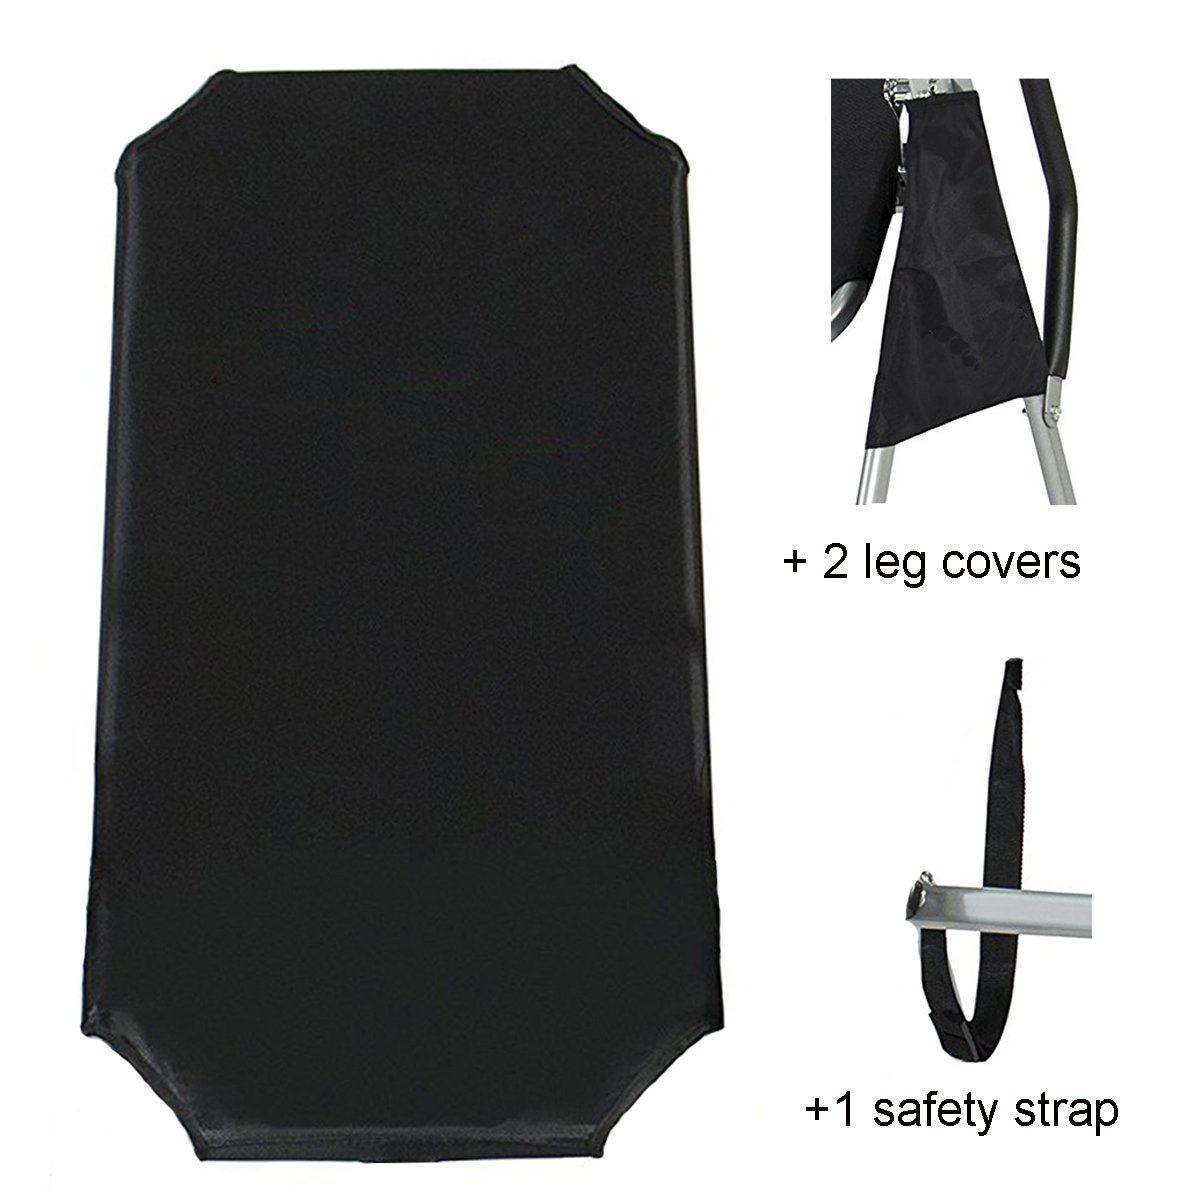 GreenMoon Oxford Cloth Cover for Inversion Table with Safty Strap